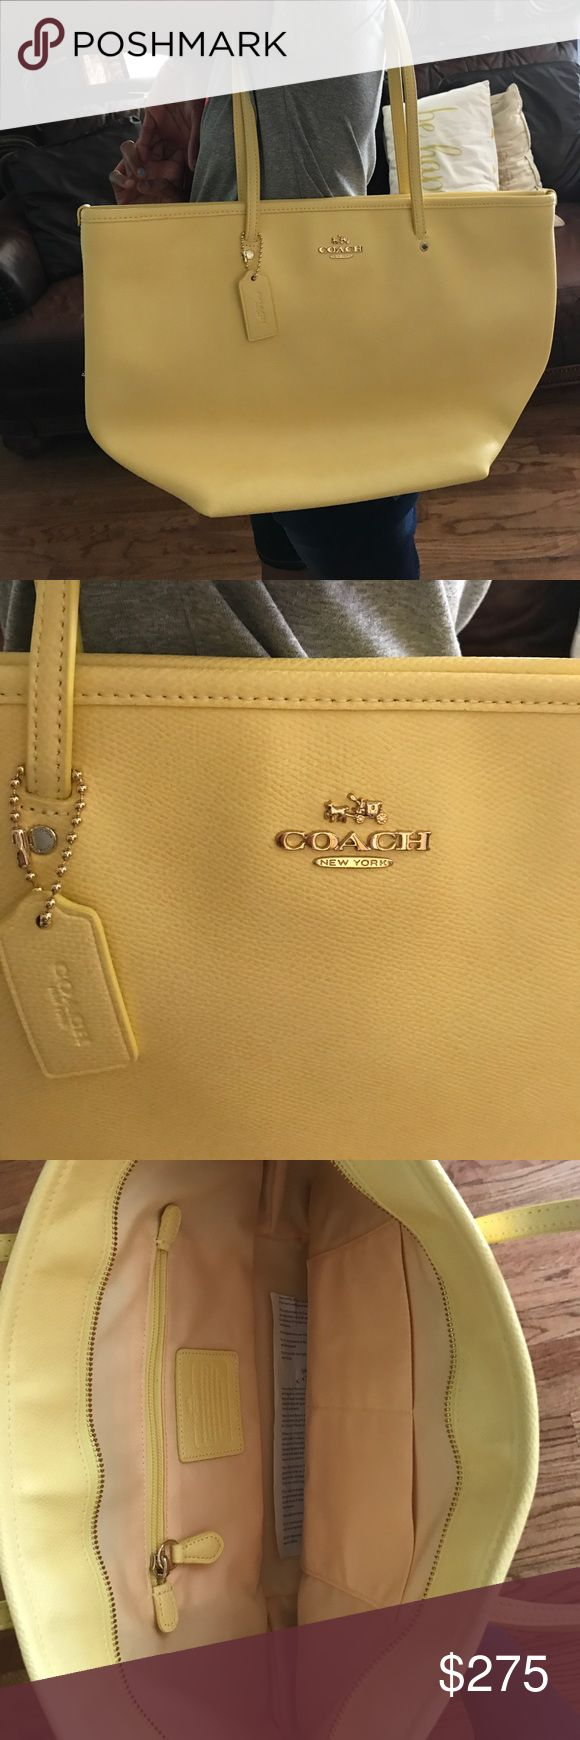 Coach Tote Bag Yellow Coach Tote Coach Bags Totes